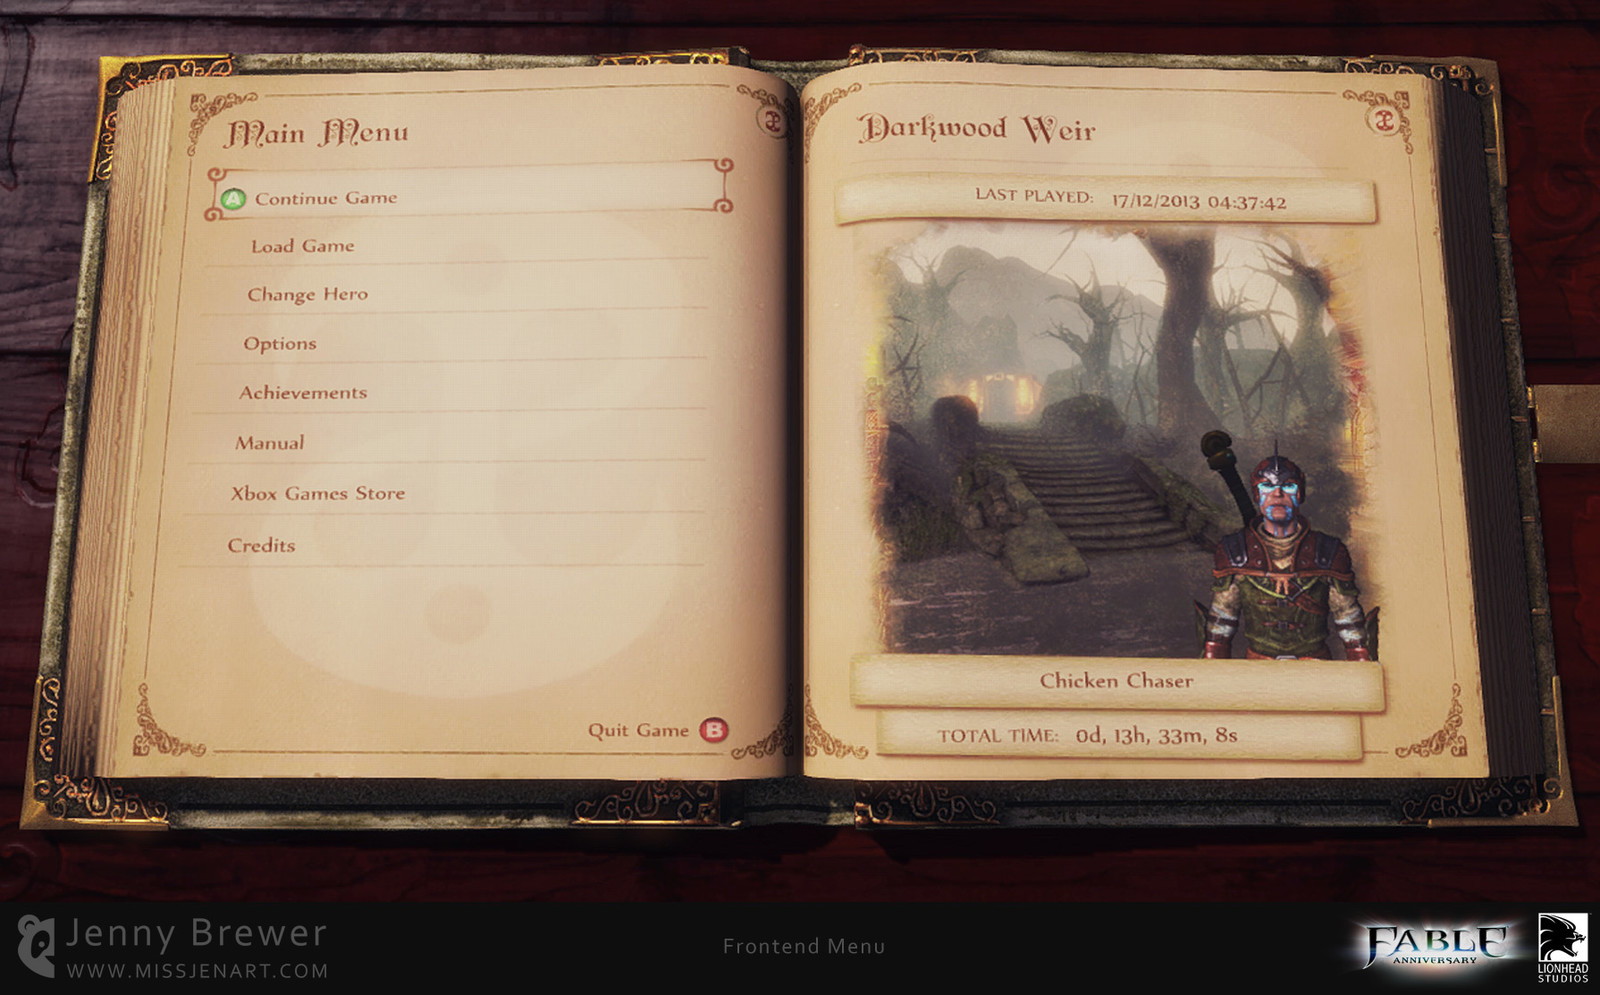 The Press Start screen transitions to the frontend menu which takes the shape of a book. Every player is starting their own story as a hero, as they progress through the game every action is documented and their own story book is made.